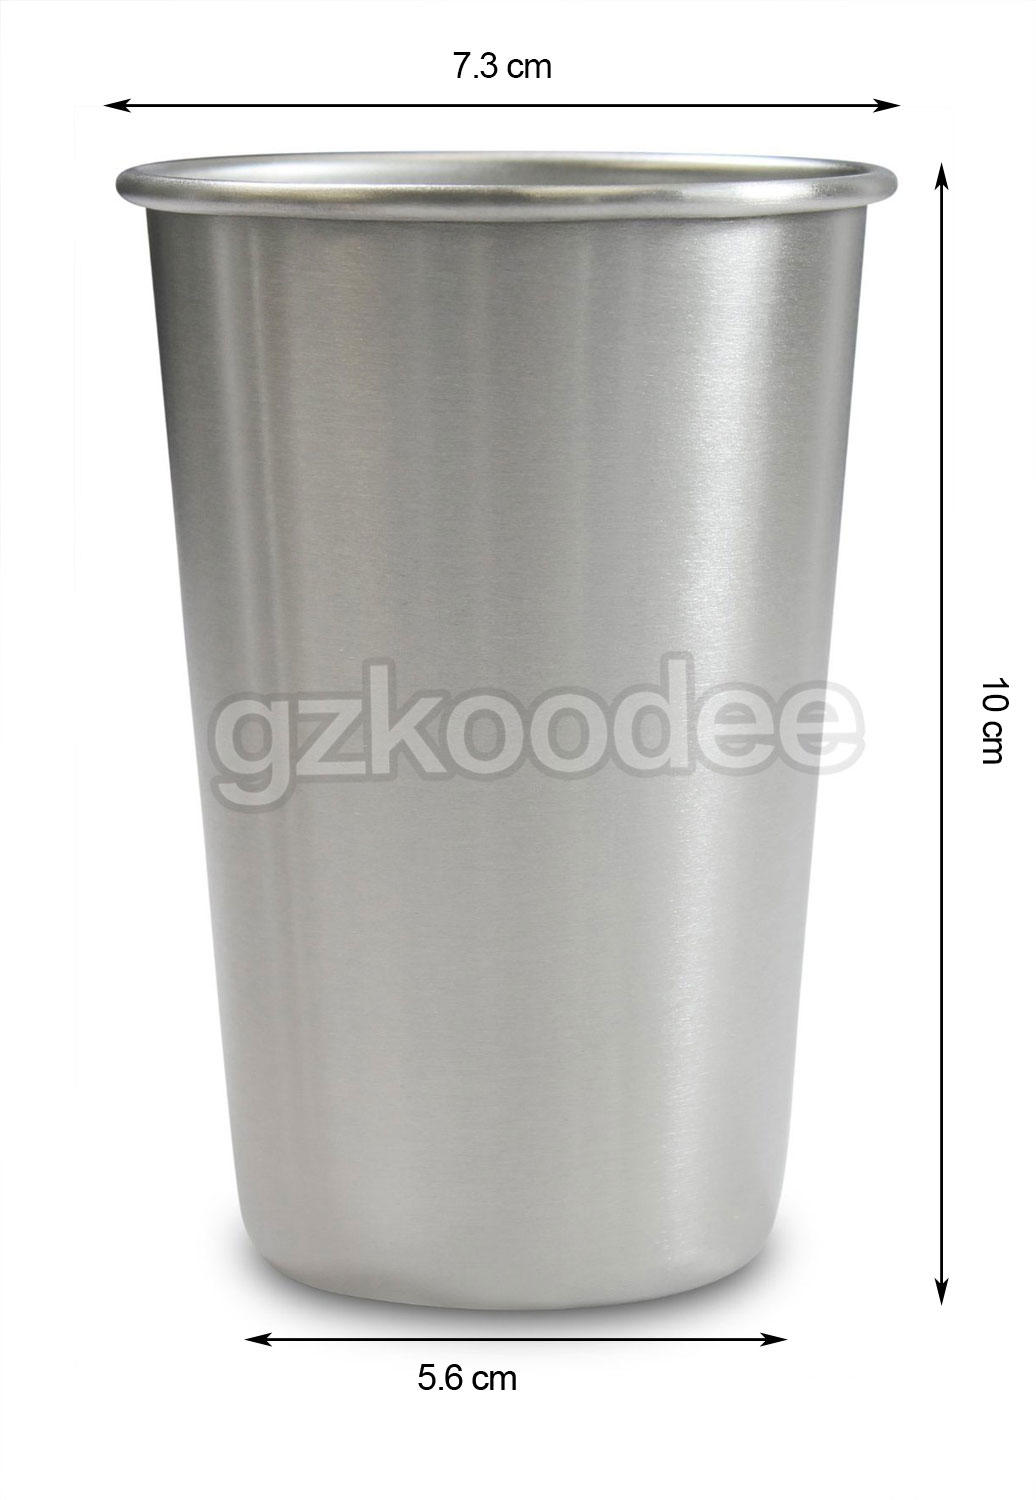 stainless steel stainless pint glass for beverage Koodee